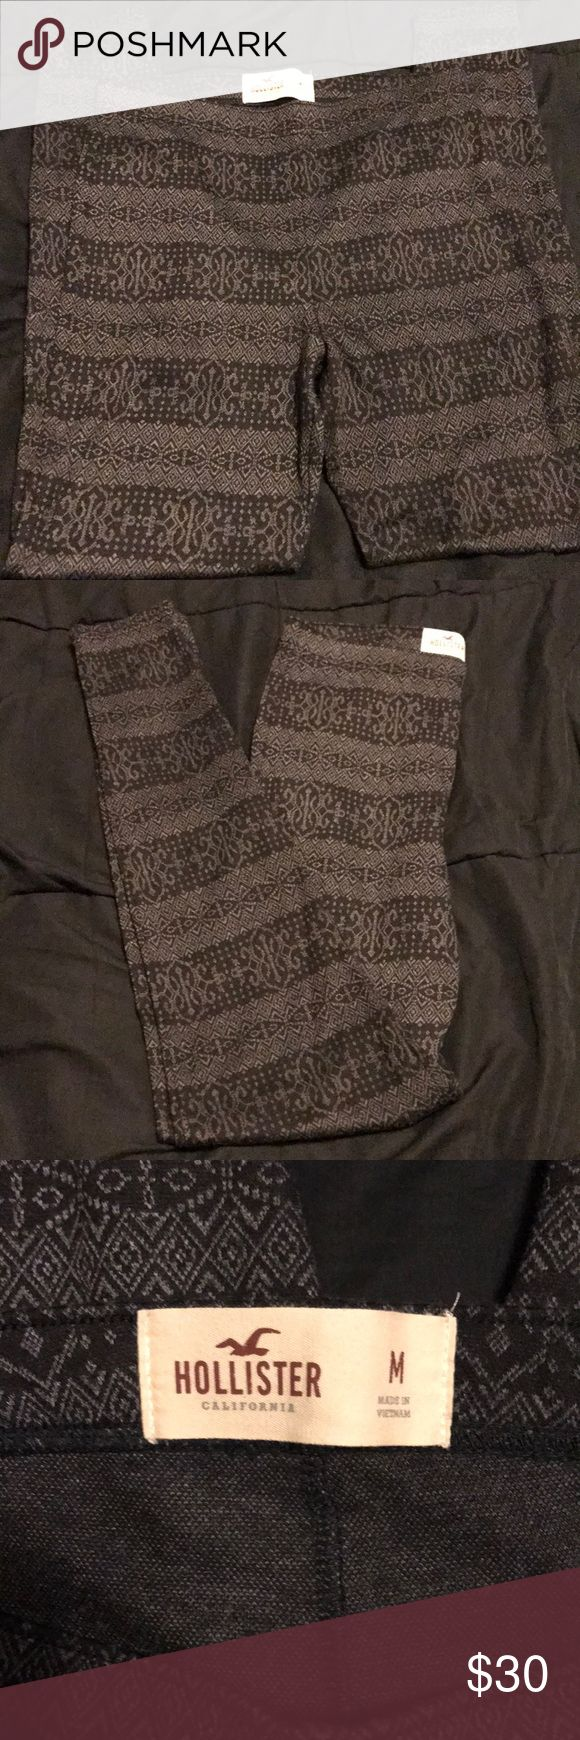 Hollister leggings Gray and black hollister leggings. Perfect condition, have only been worn once. Smoke free home, open to offers! Hollister Pants Leggings